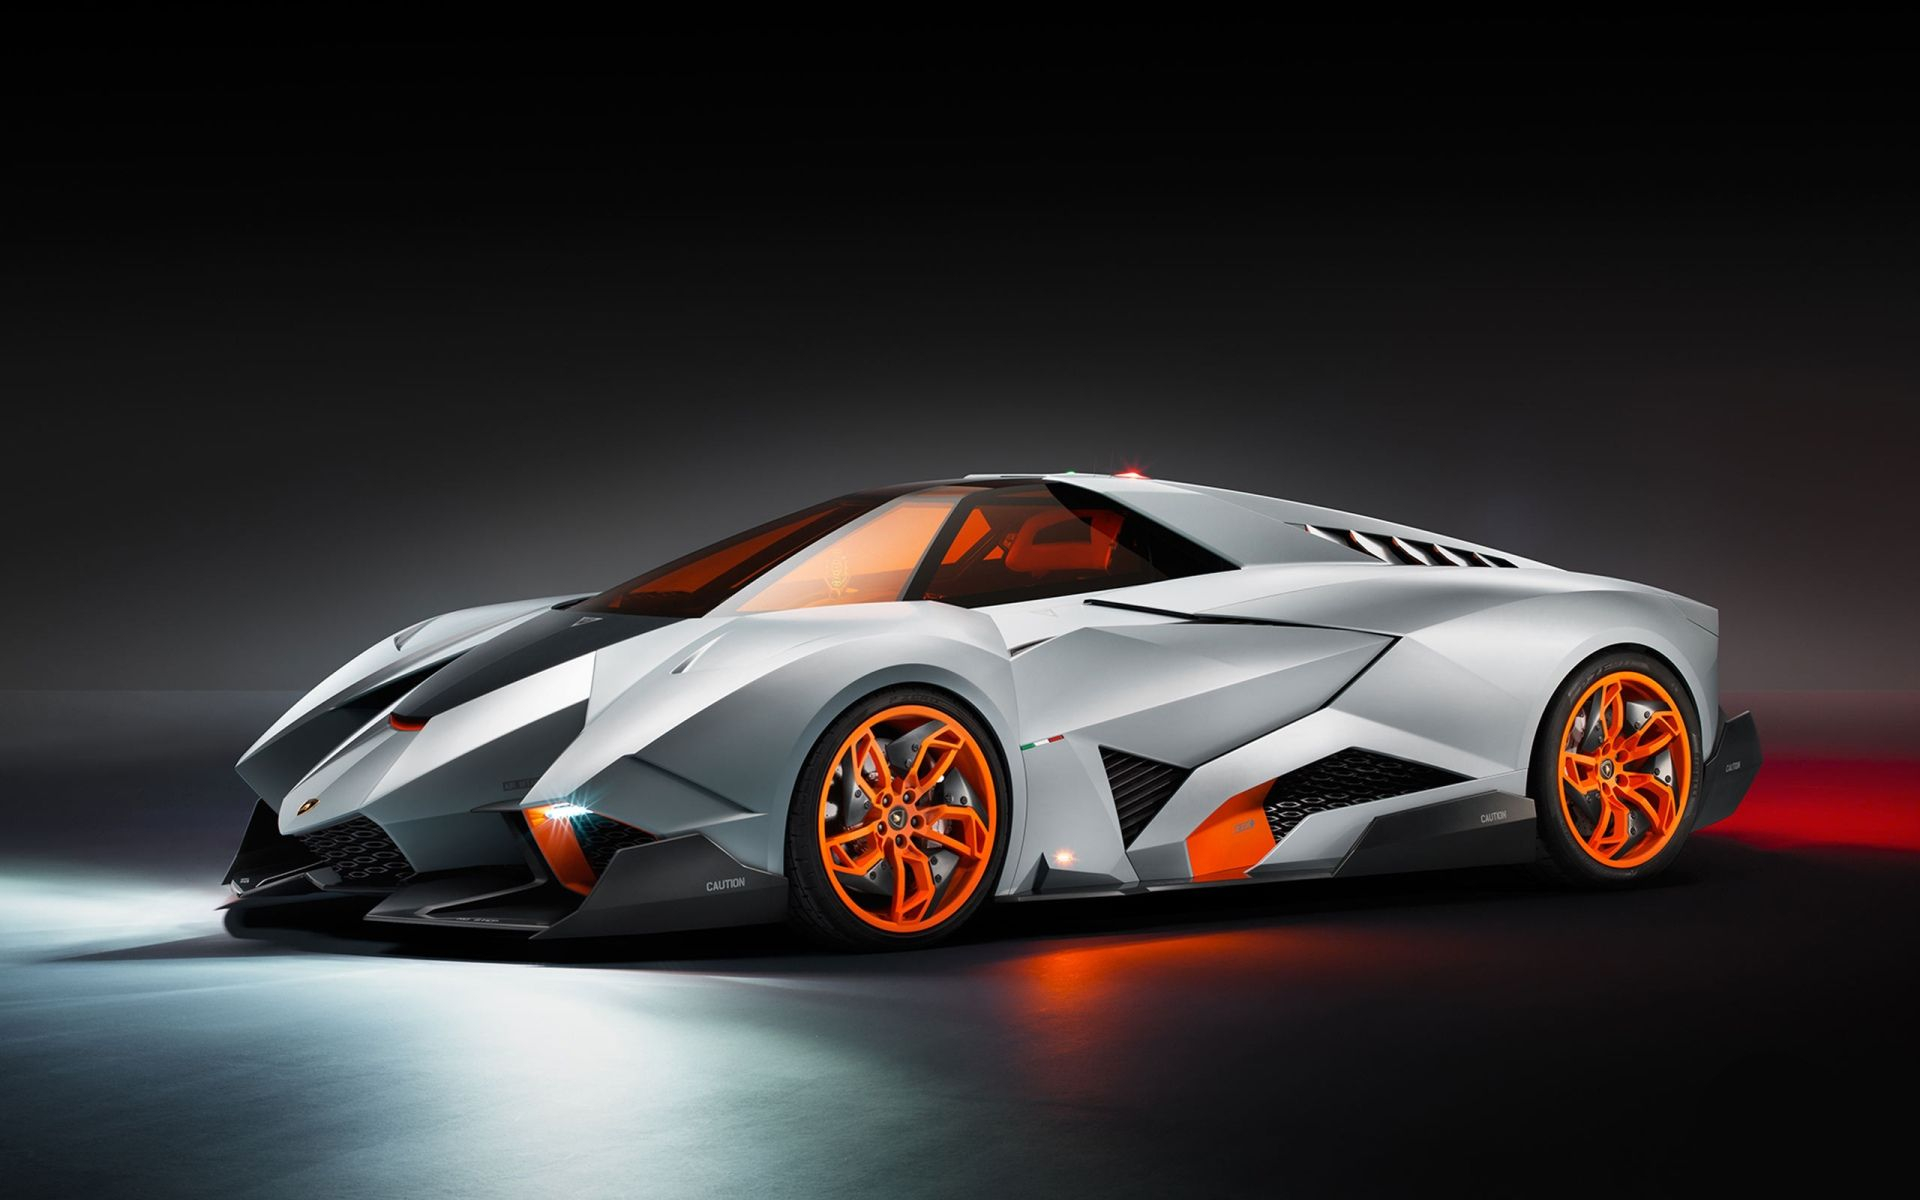 Cool Cars Hd Background Wallpaper 259 HD Wallpapers   car ...